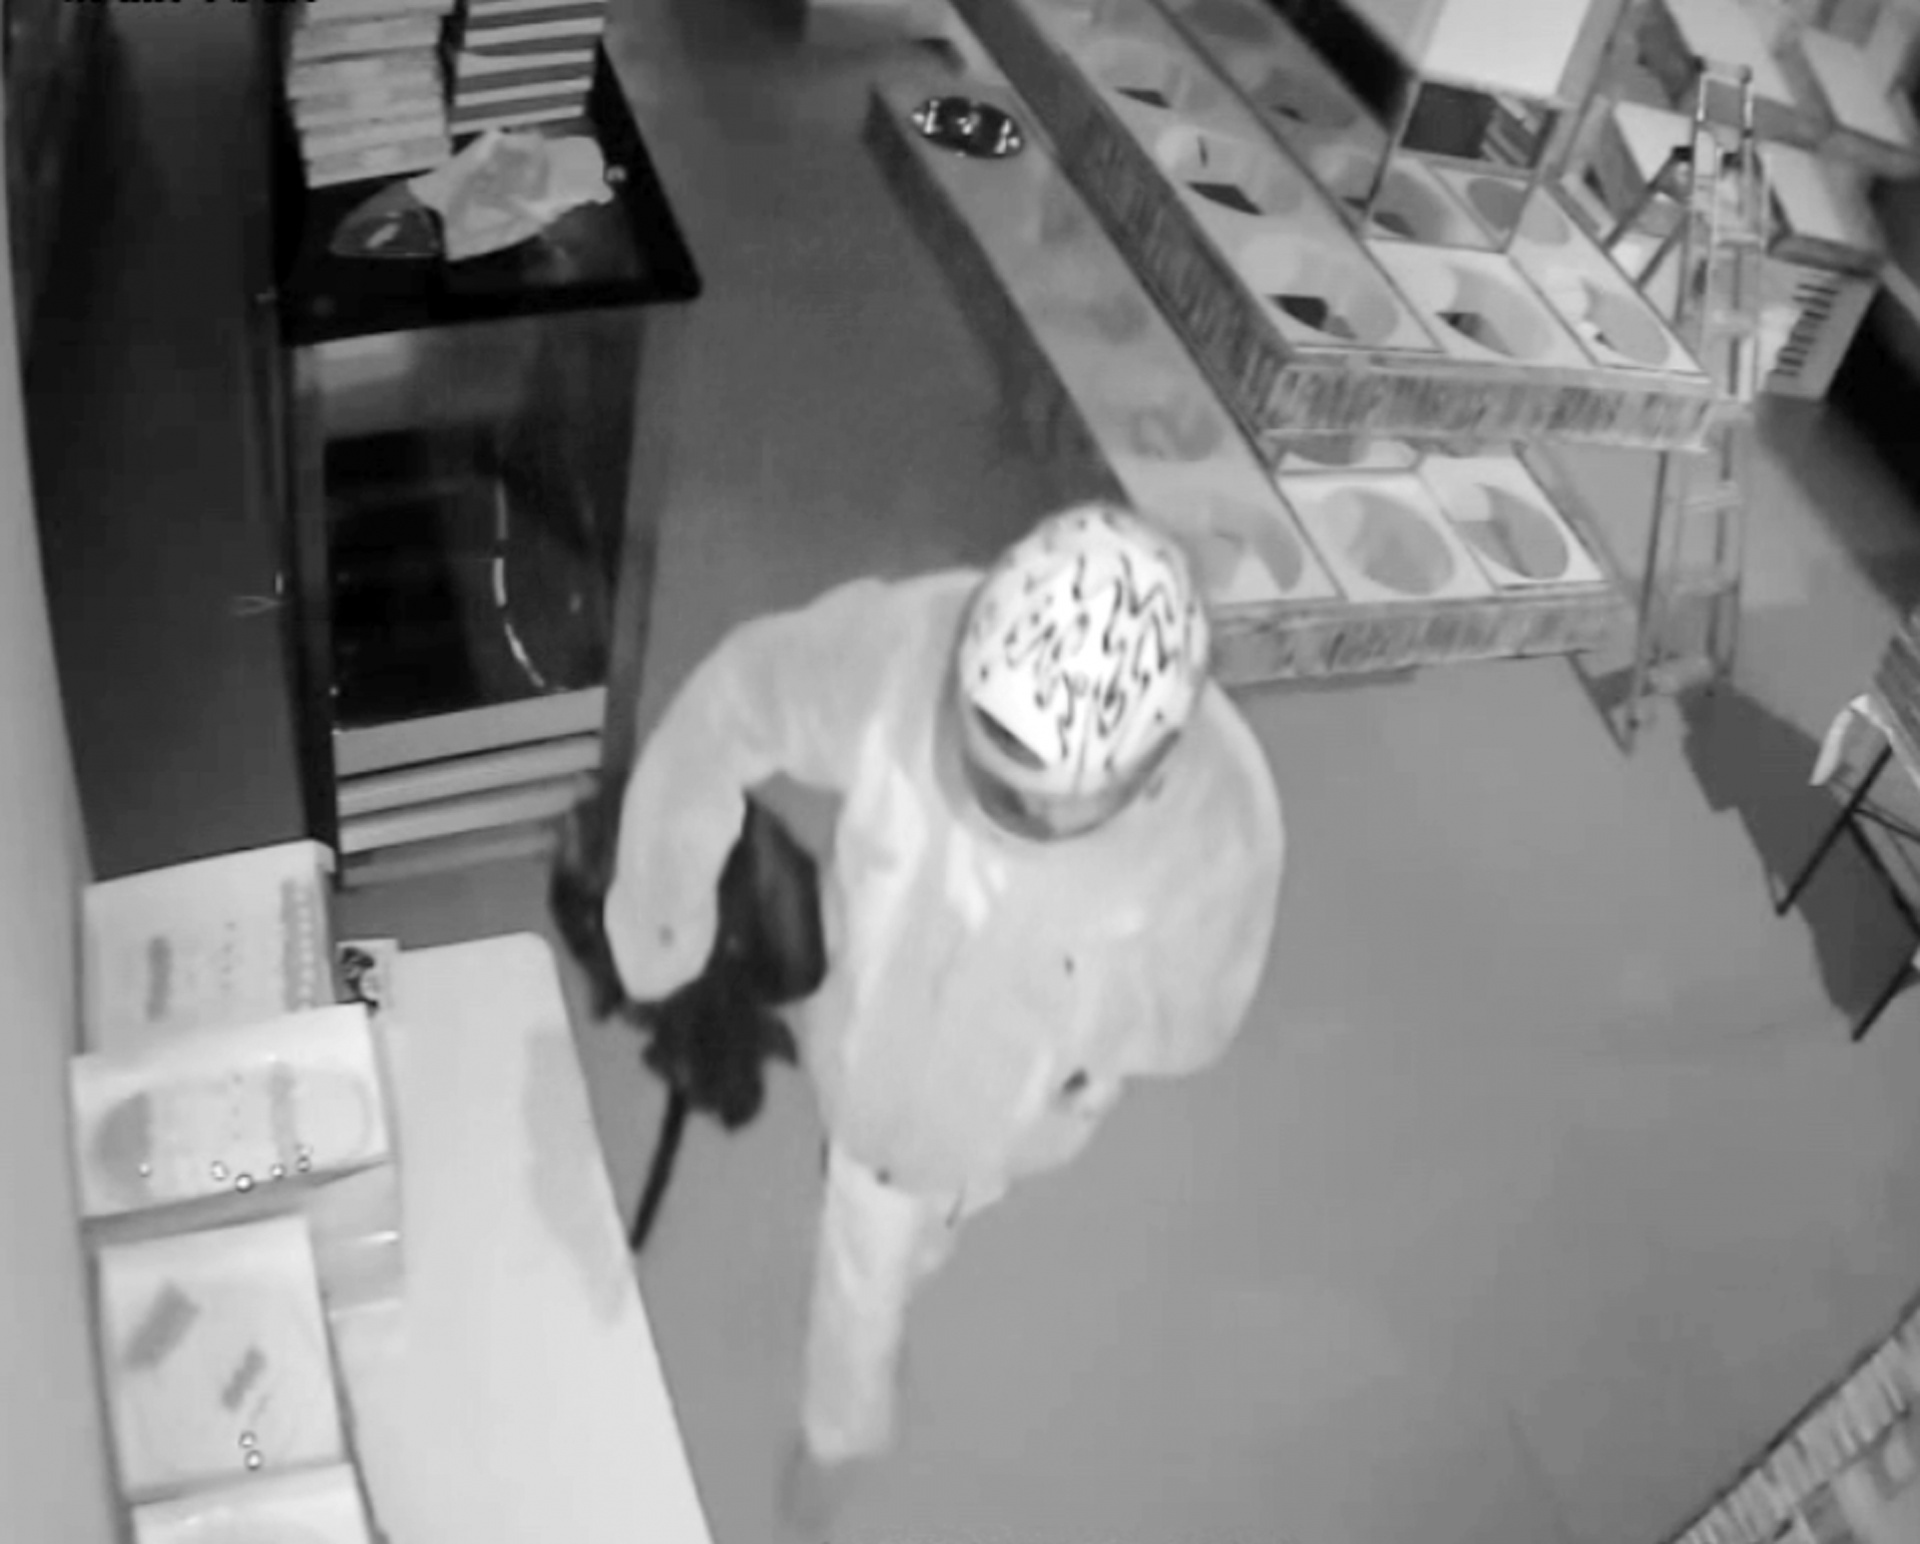 CCTV issued by the Metropolitan Police showing a masked arsonist who calmly poured petrol around the Tavazo bakery in Finchley, north London, before sending a surge of flames shooting through the building.